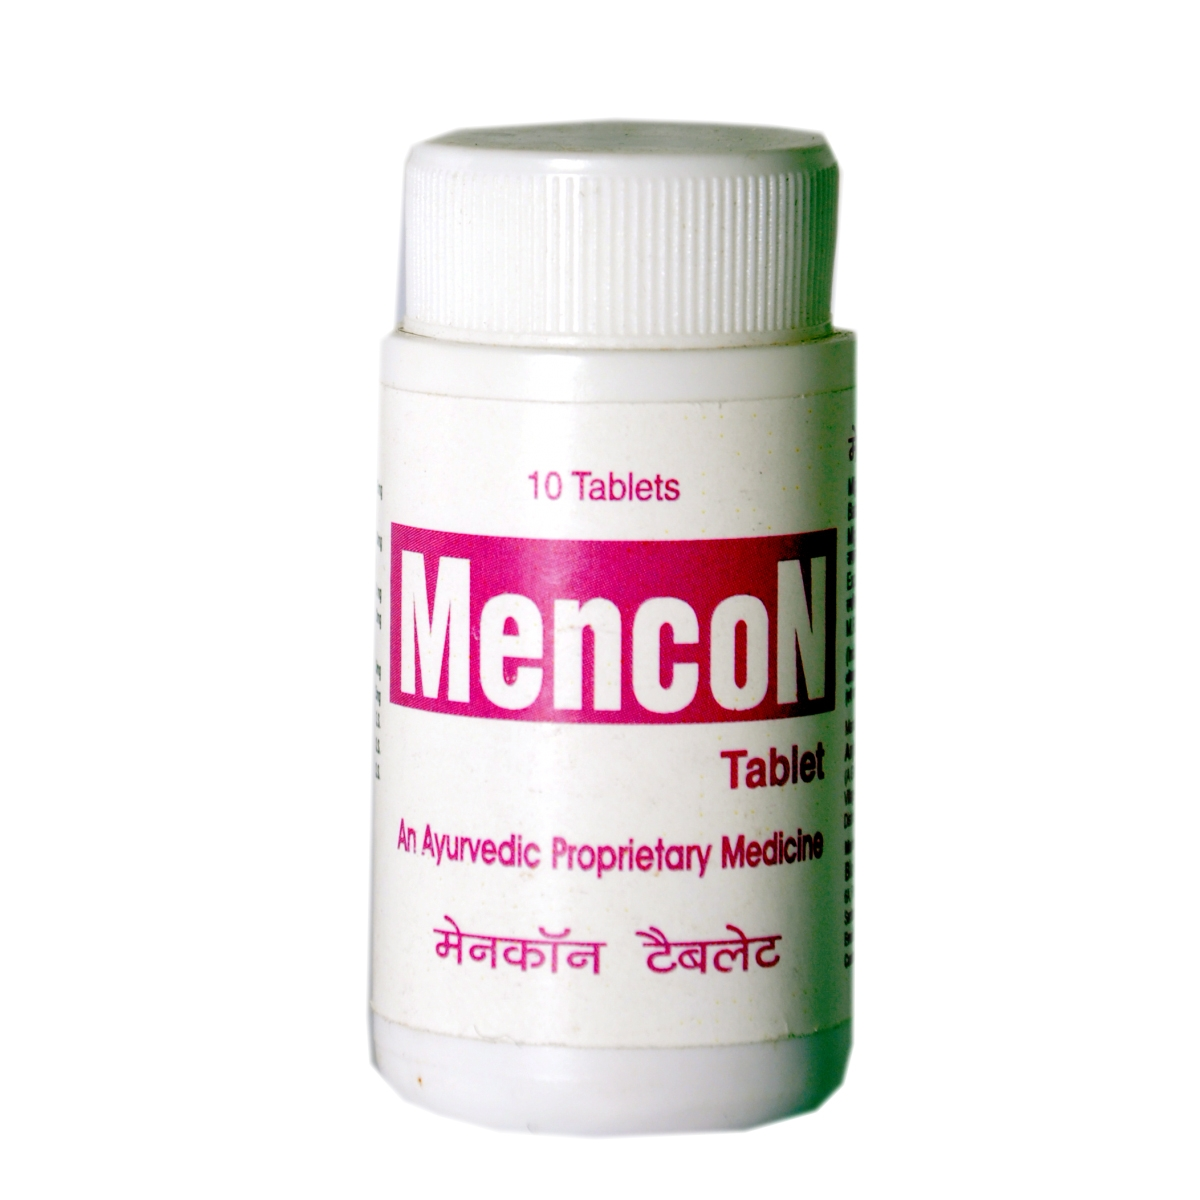 Mencon Tablet In Tinsukia